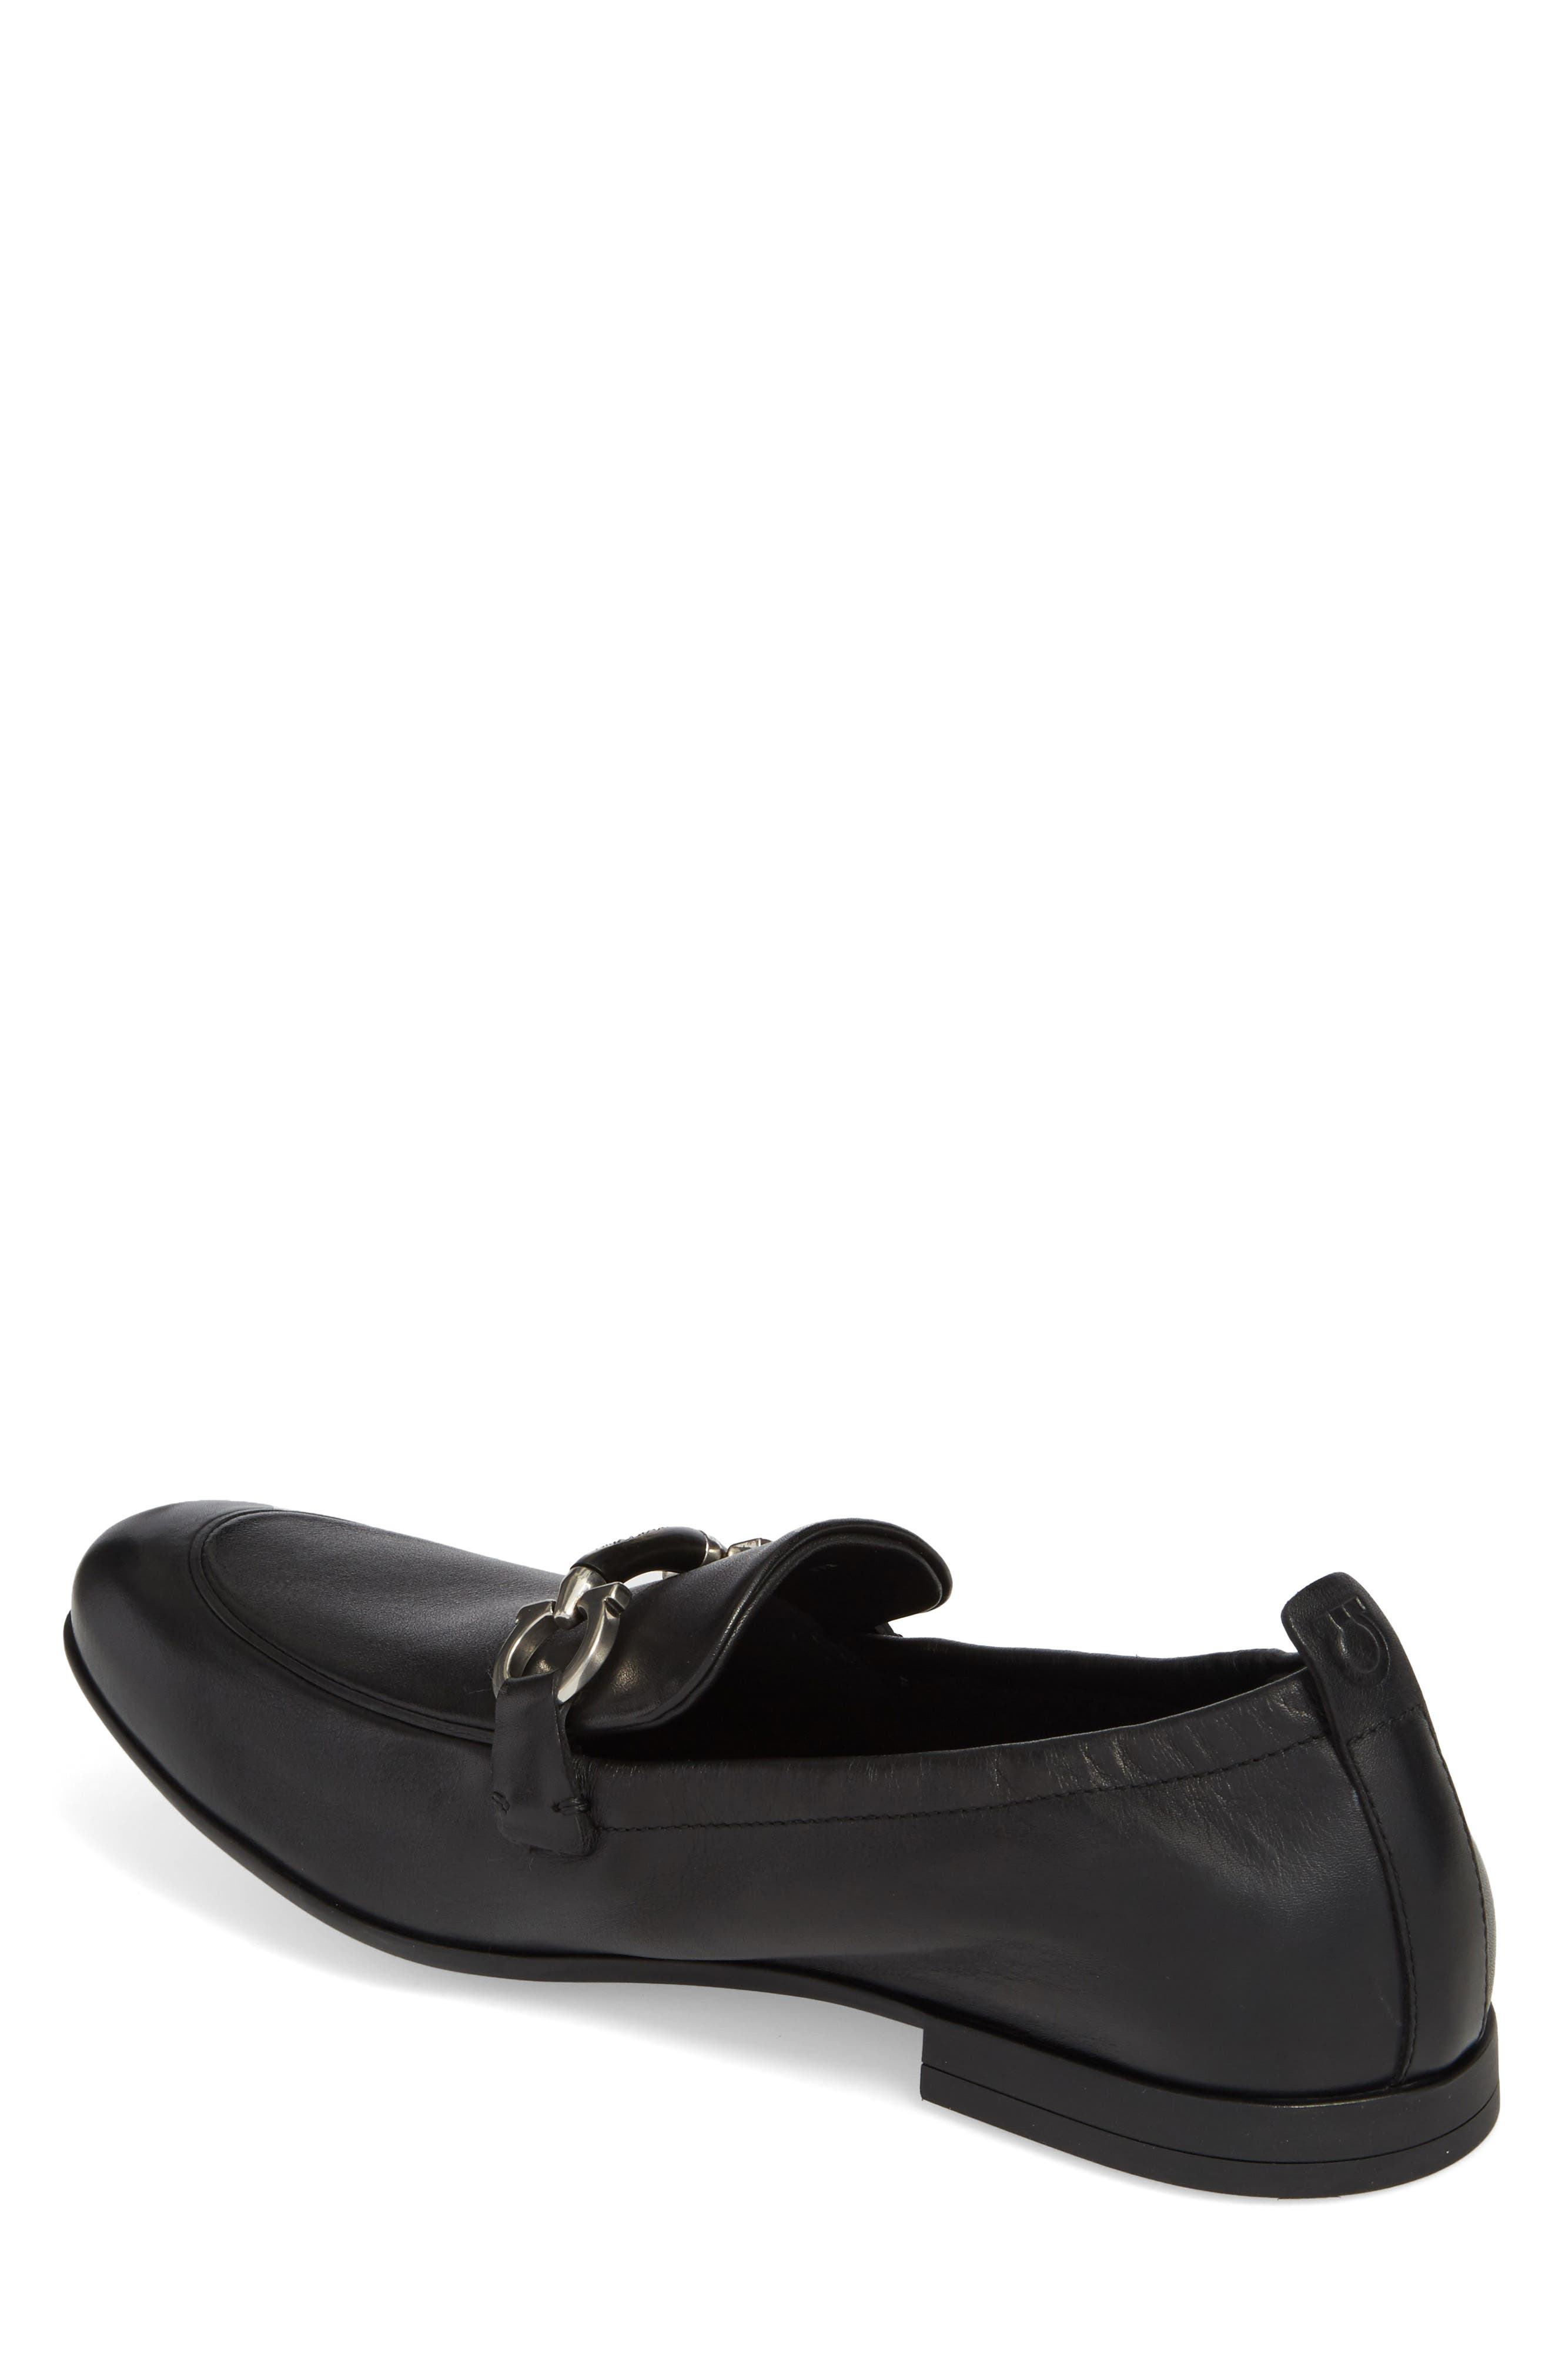 Celso Bit Loafer,                             Alternate thumbnail 2, color,                             001